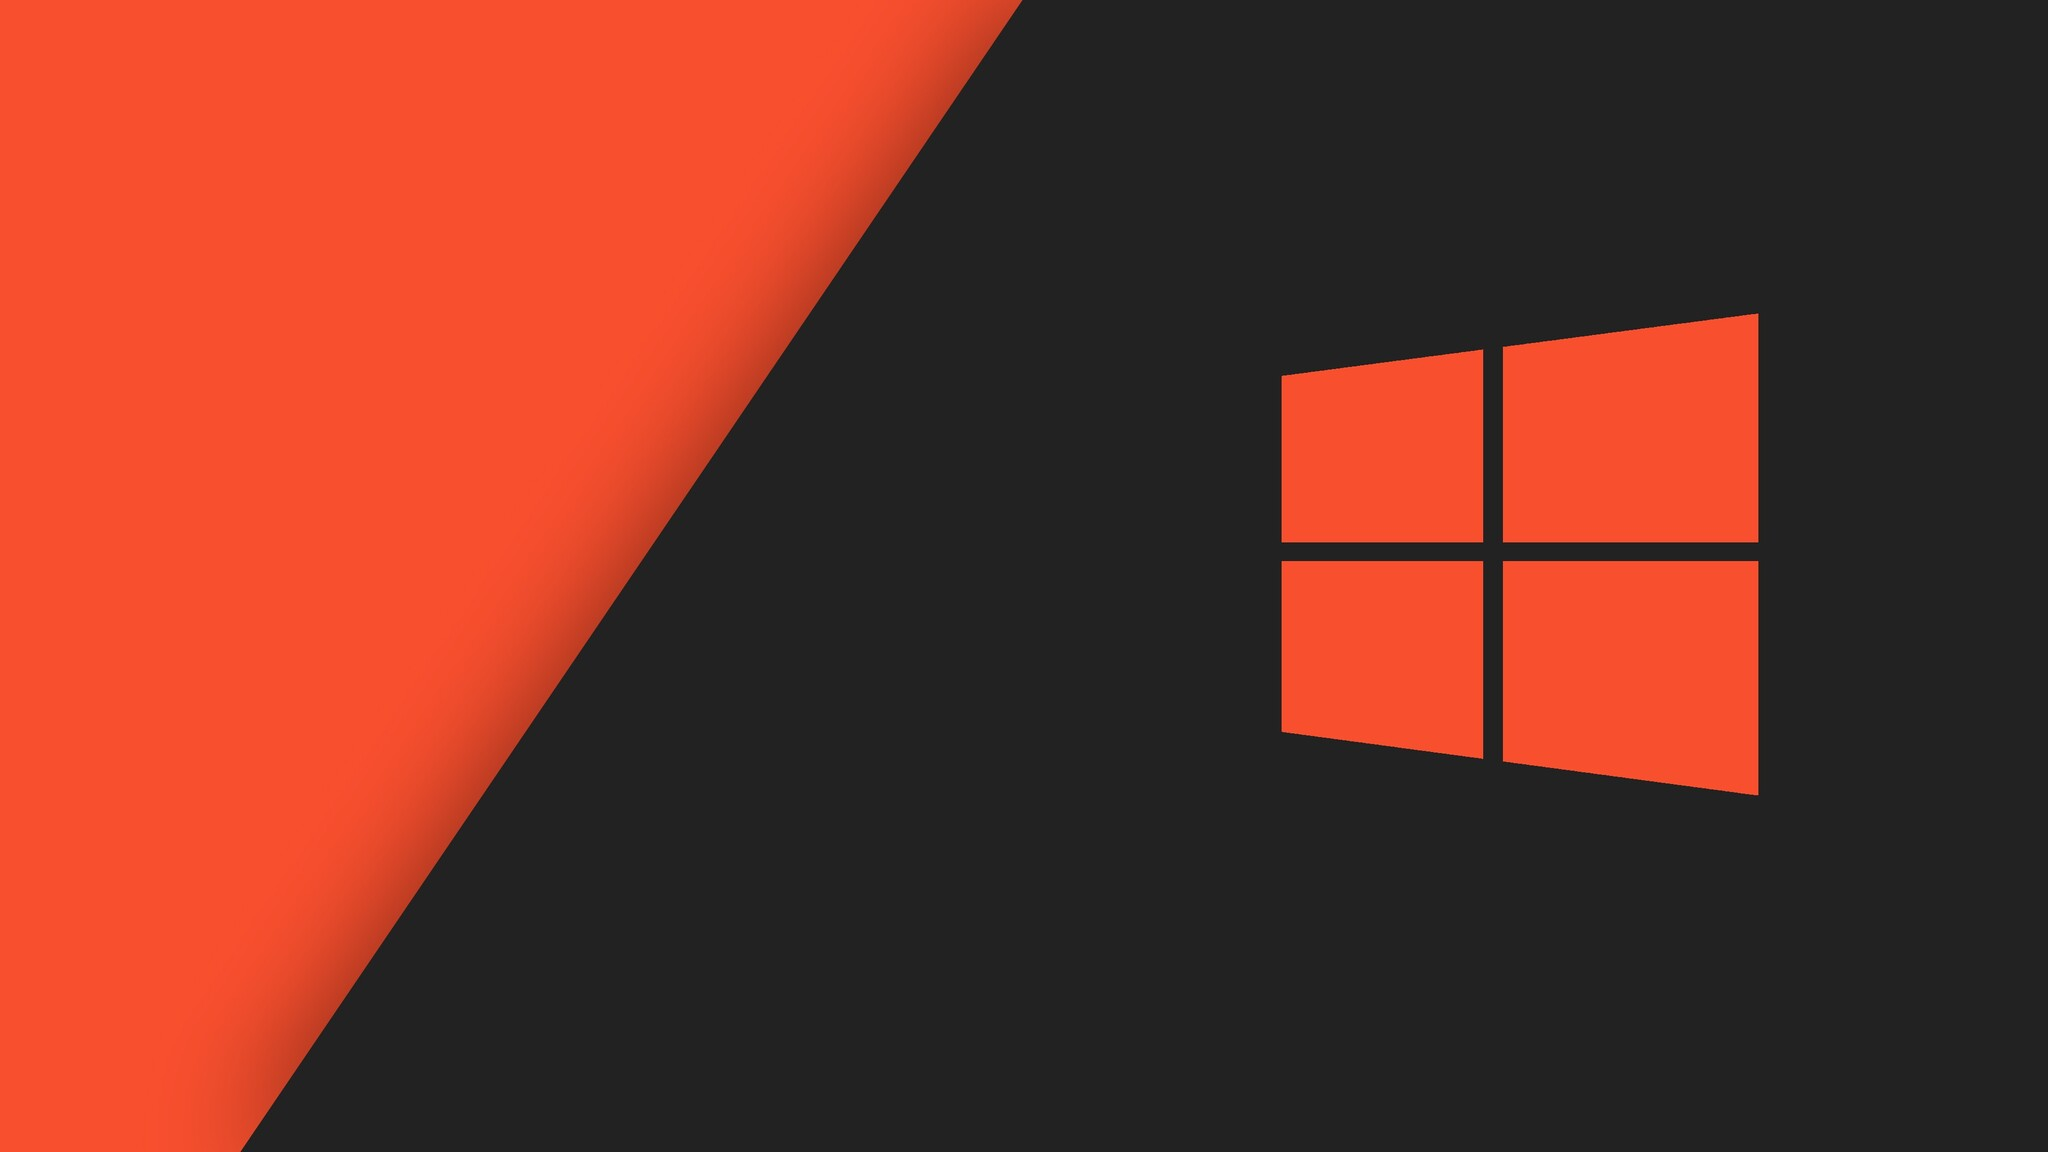 windows-10-orange-stock.jpg